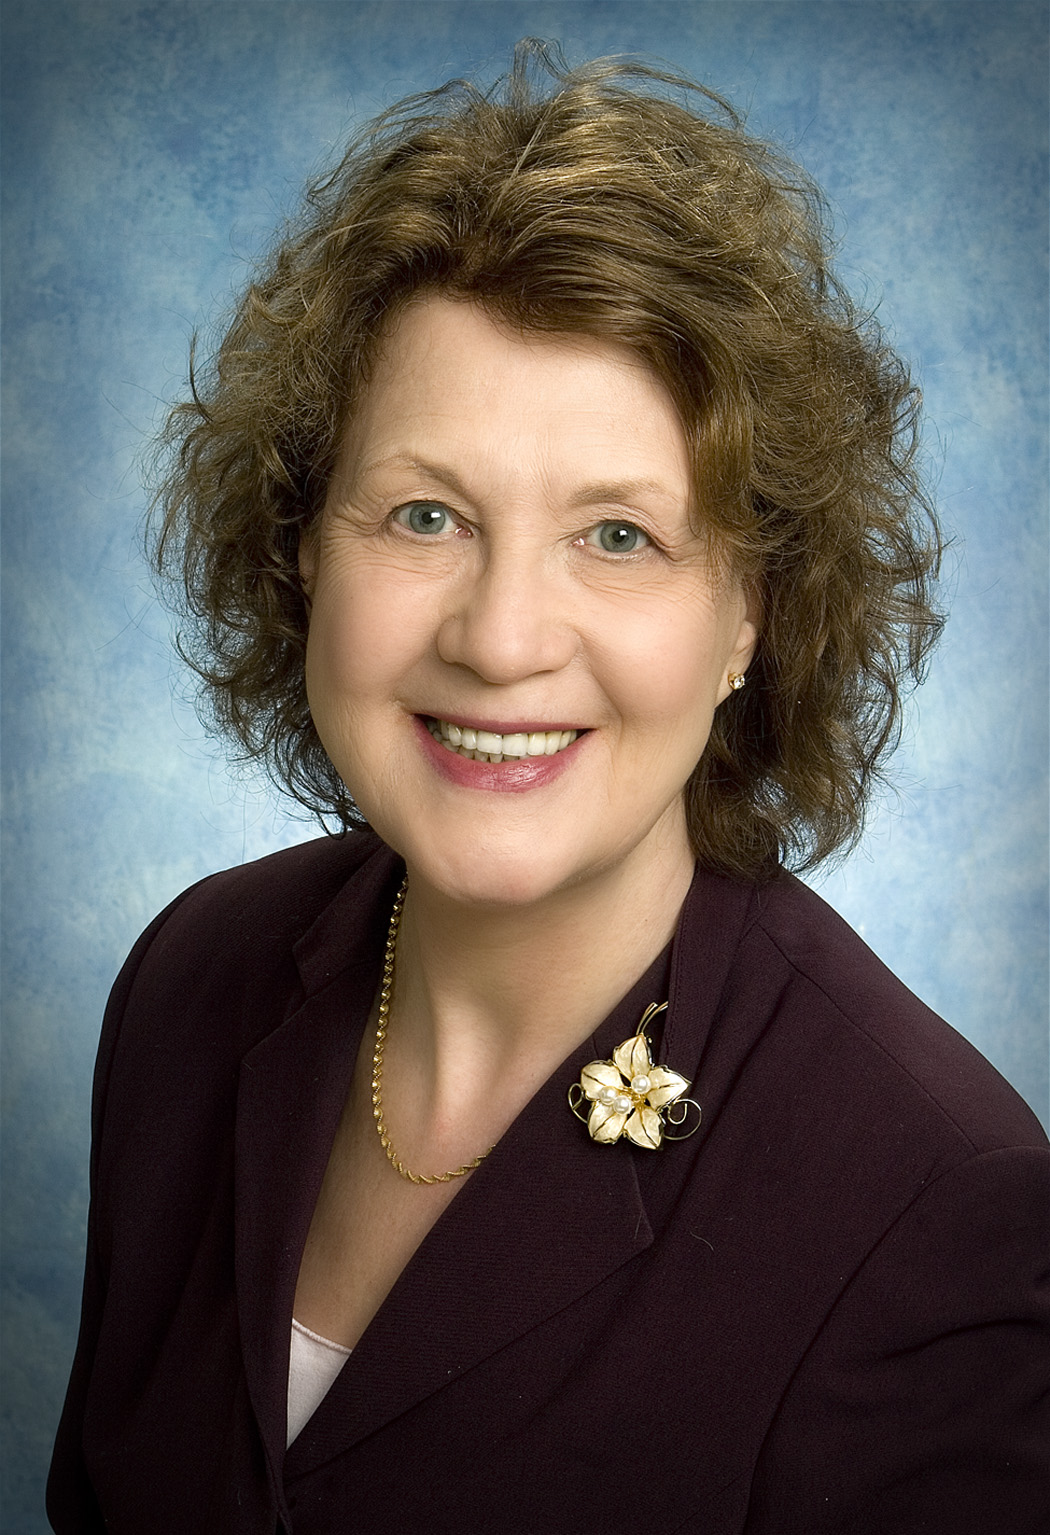 Janice M. Joneja, Ph.D.